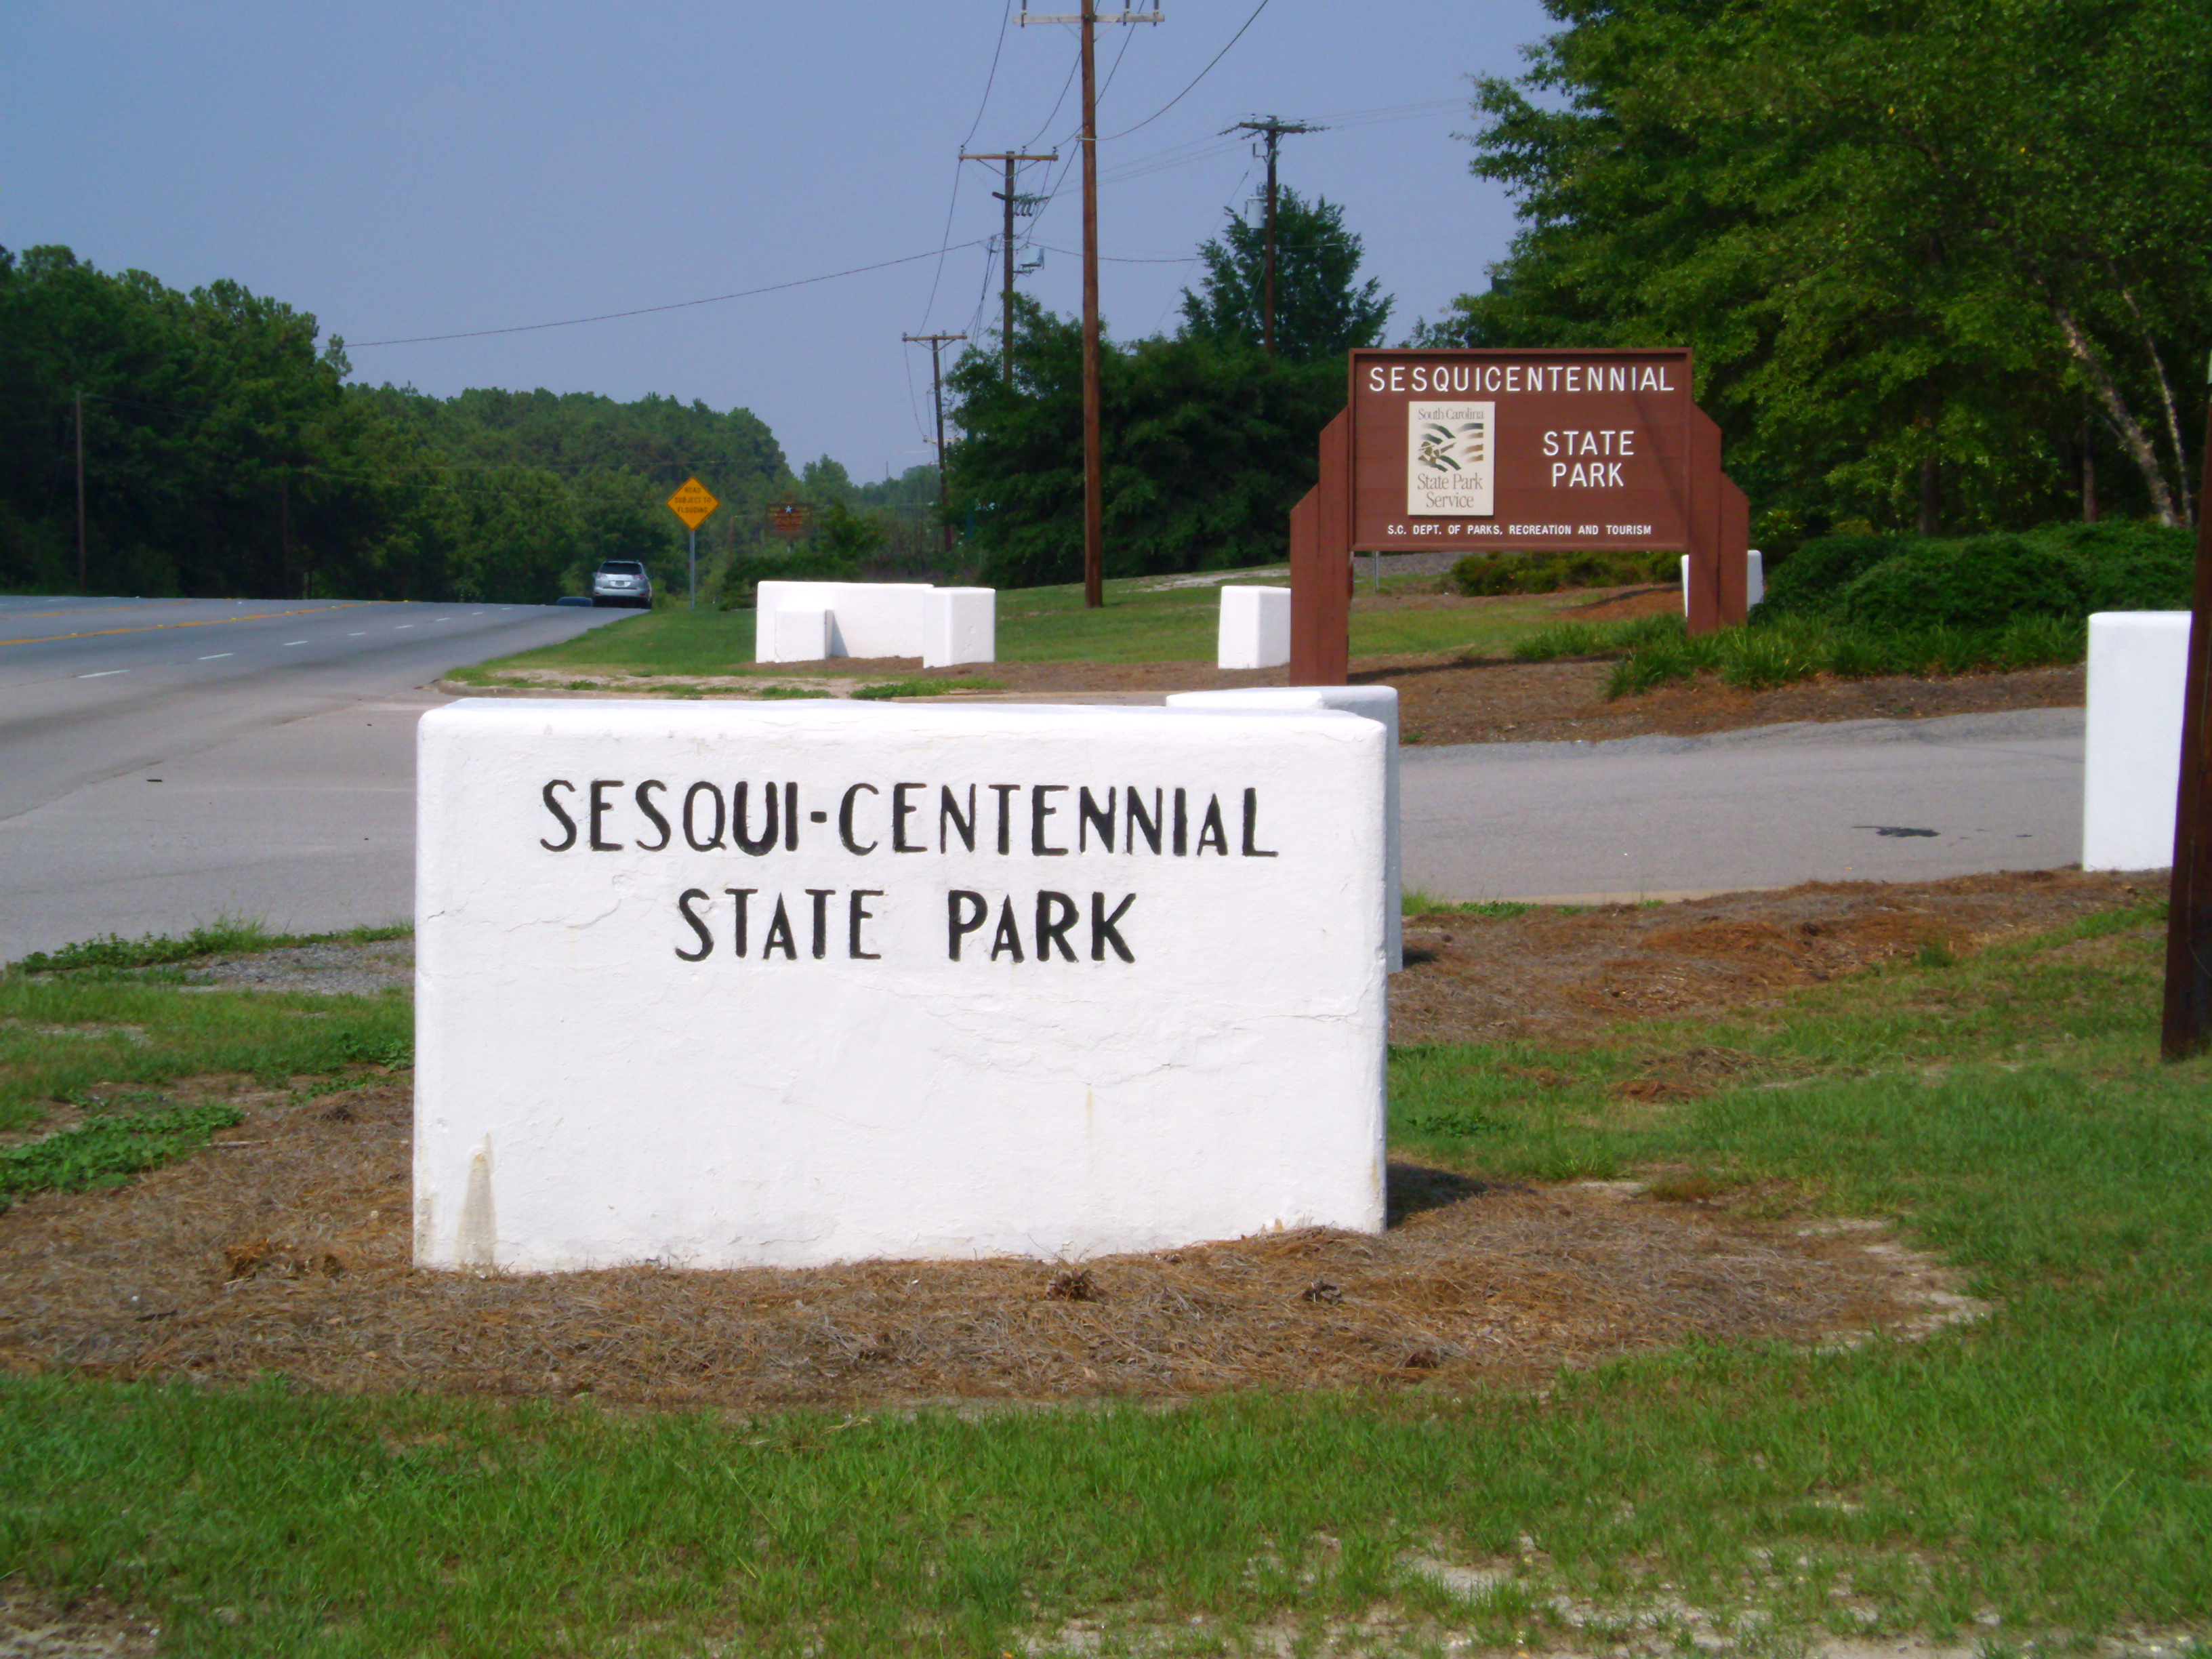 sesquicentennial state park - photo #13